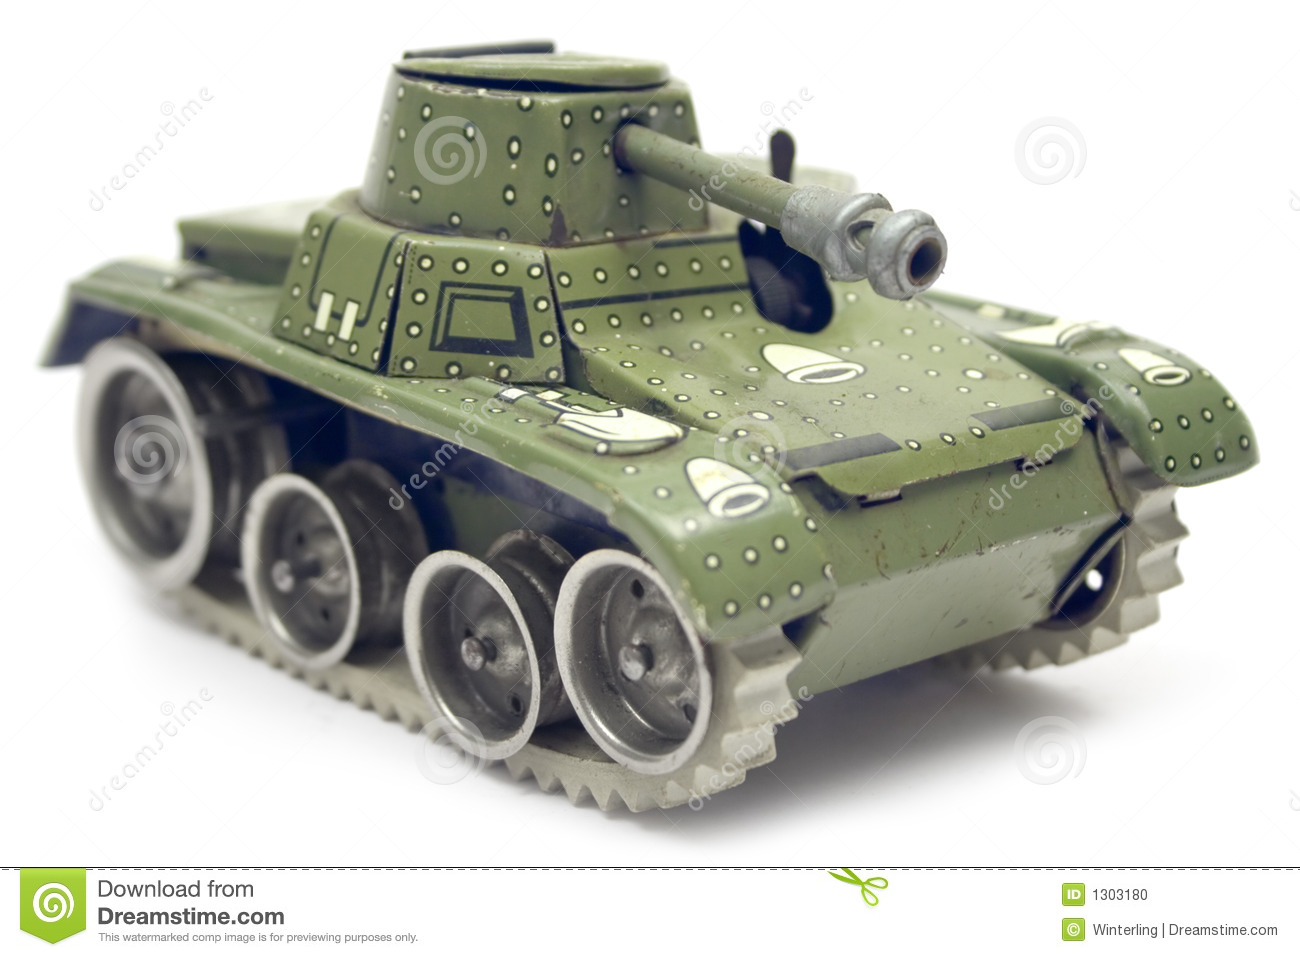 Old Toy Tank Stock Photo - Image: 1303180